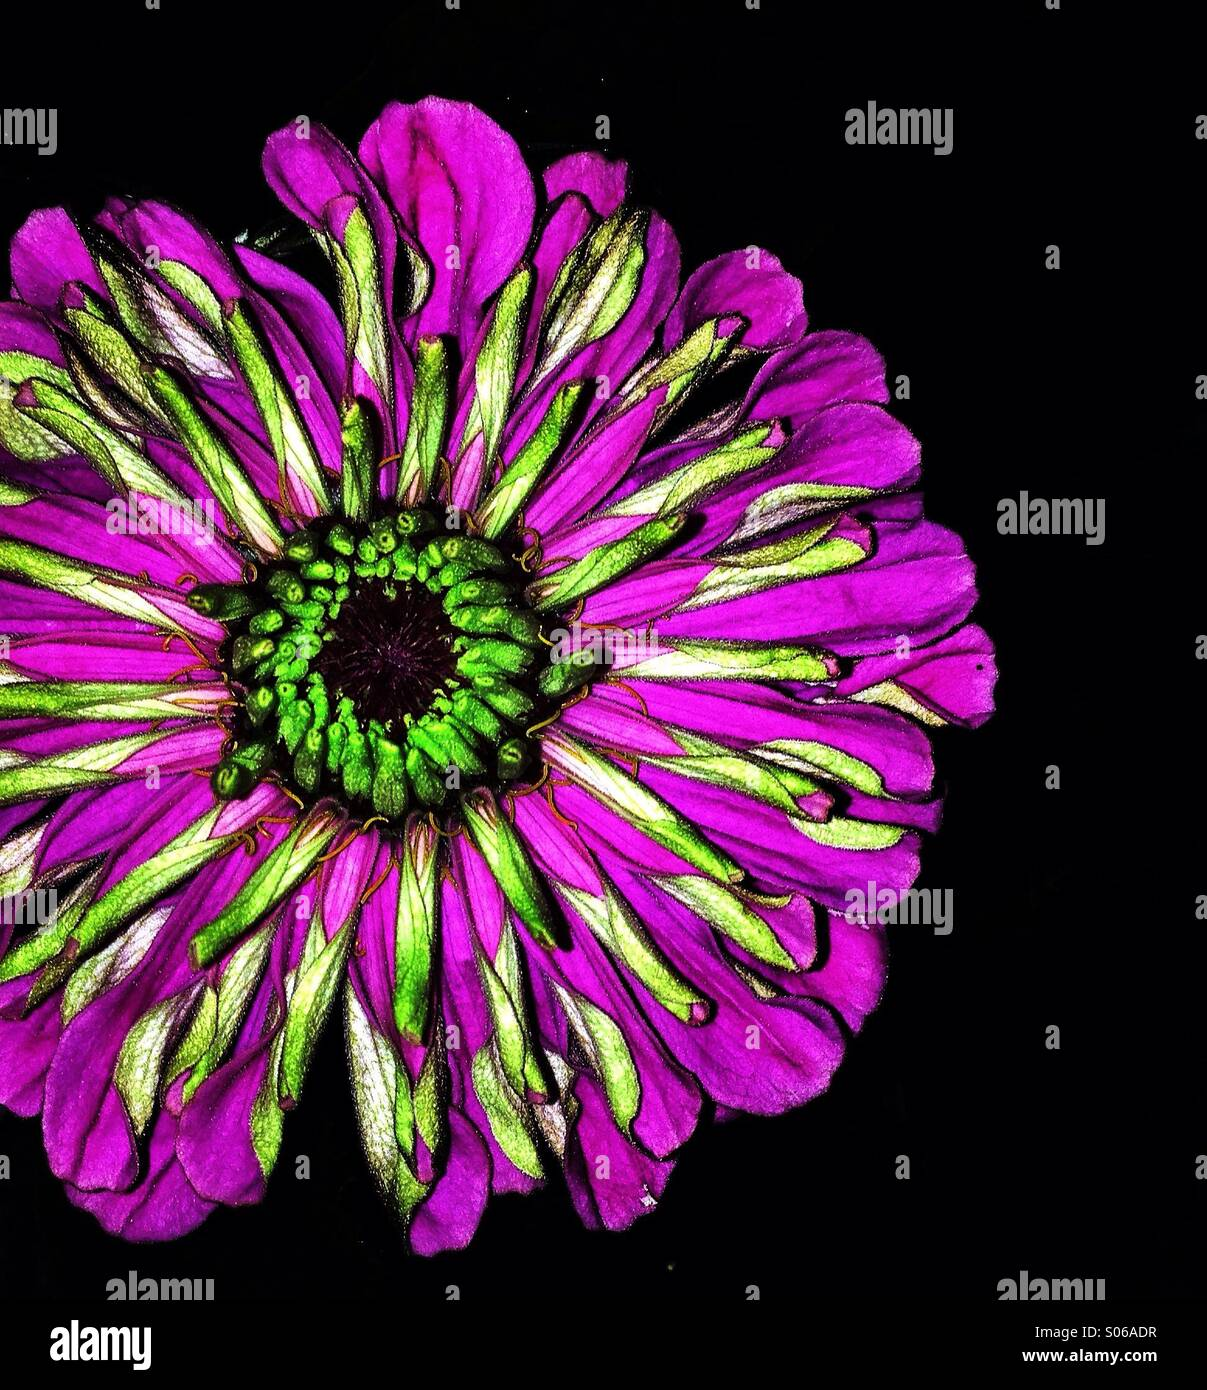 Vibrant flower - Stock Image